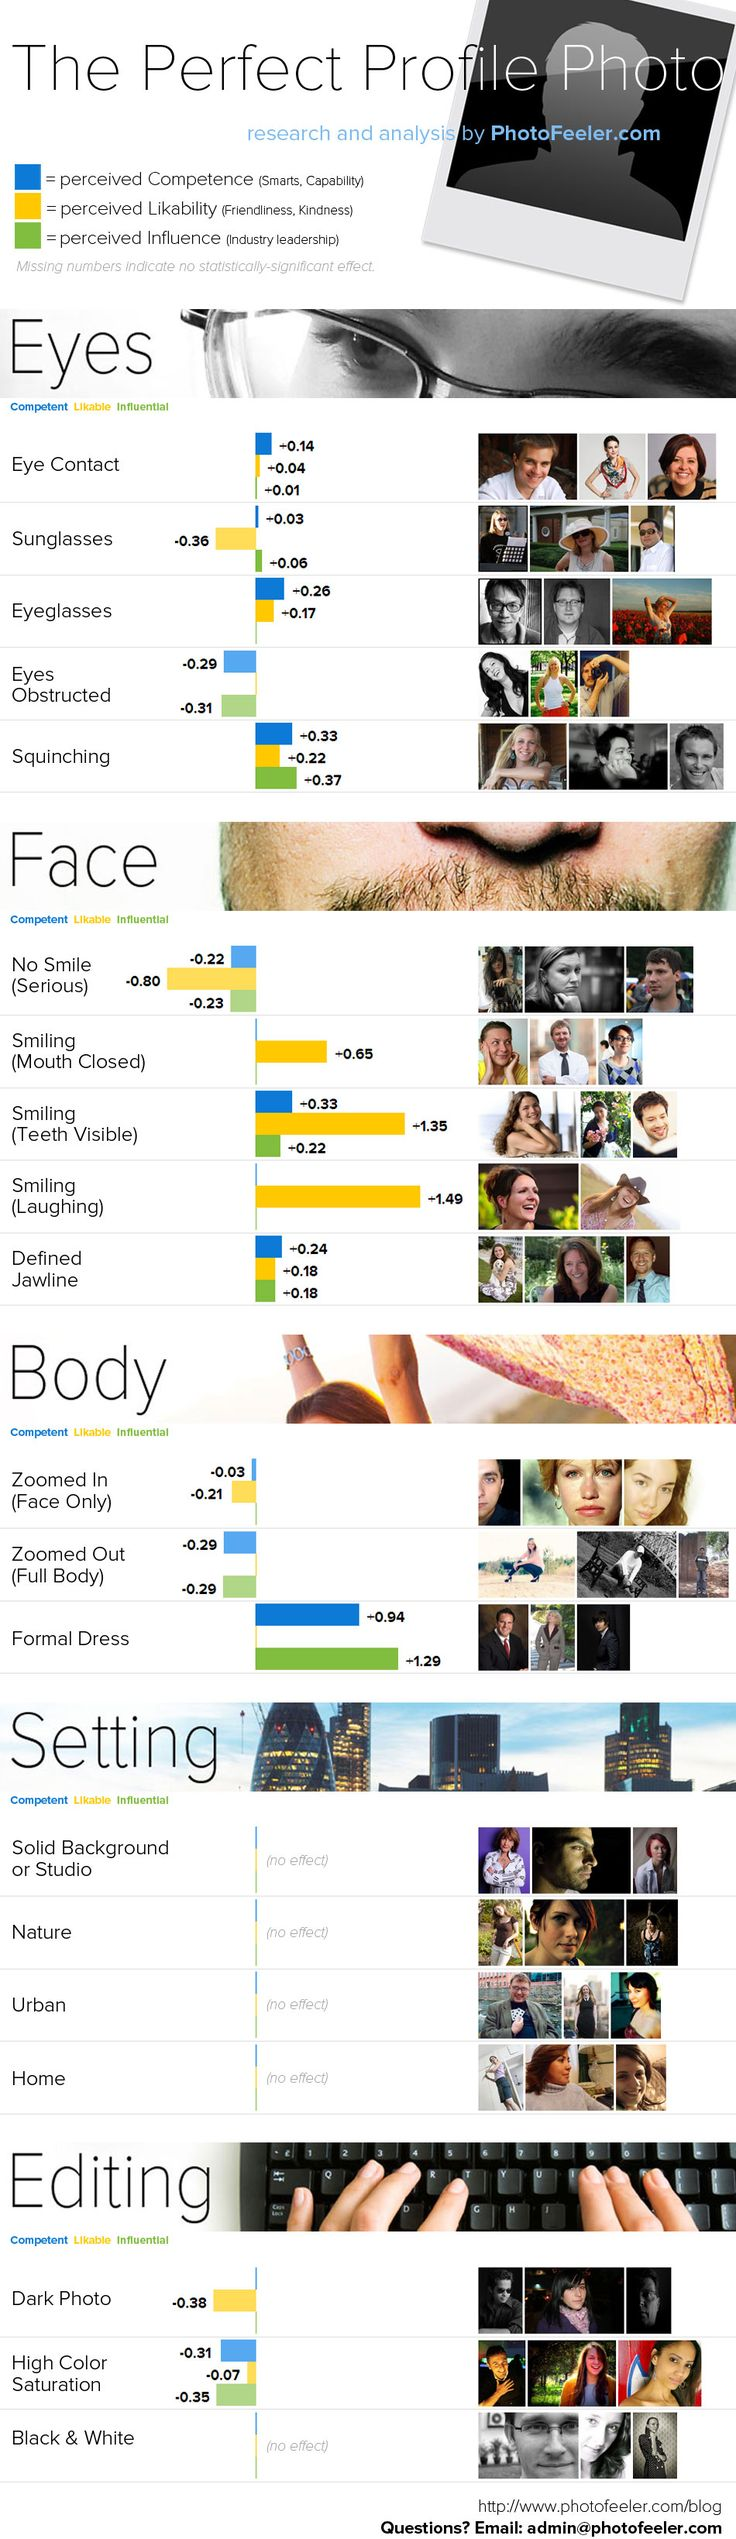 The Perfect Profile Photo Infographic